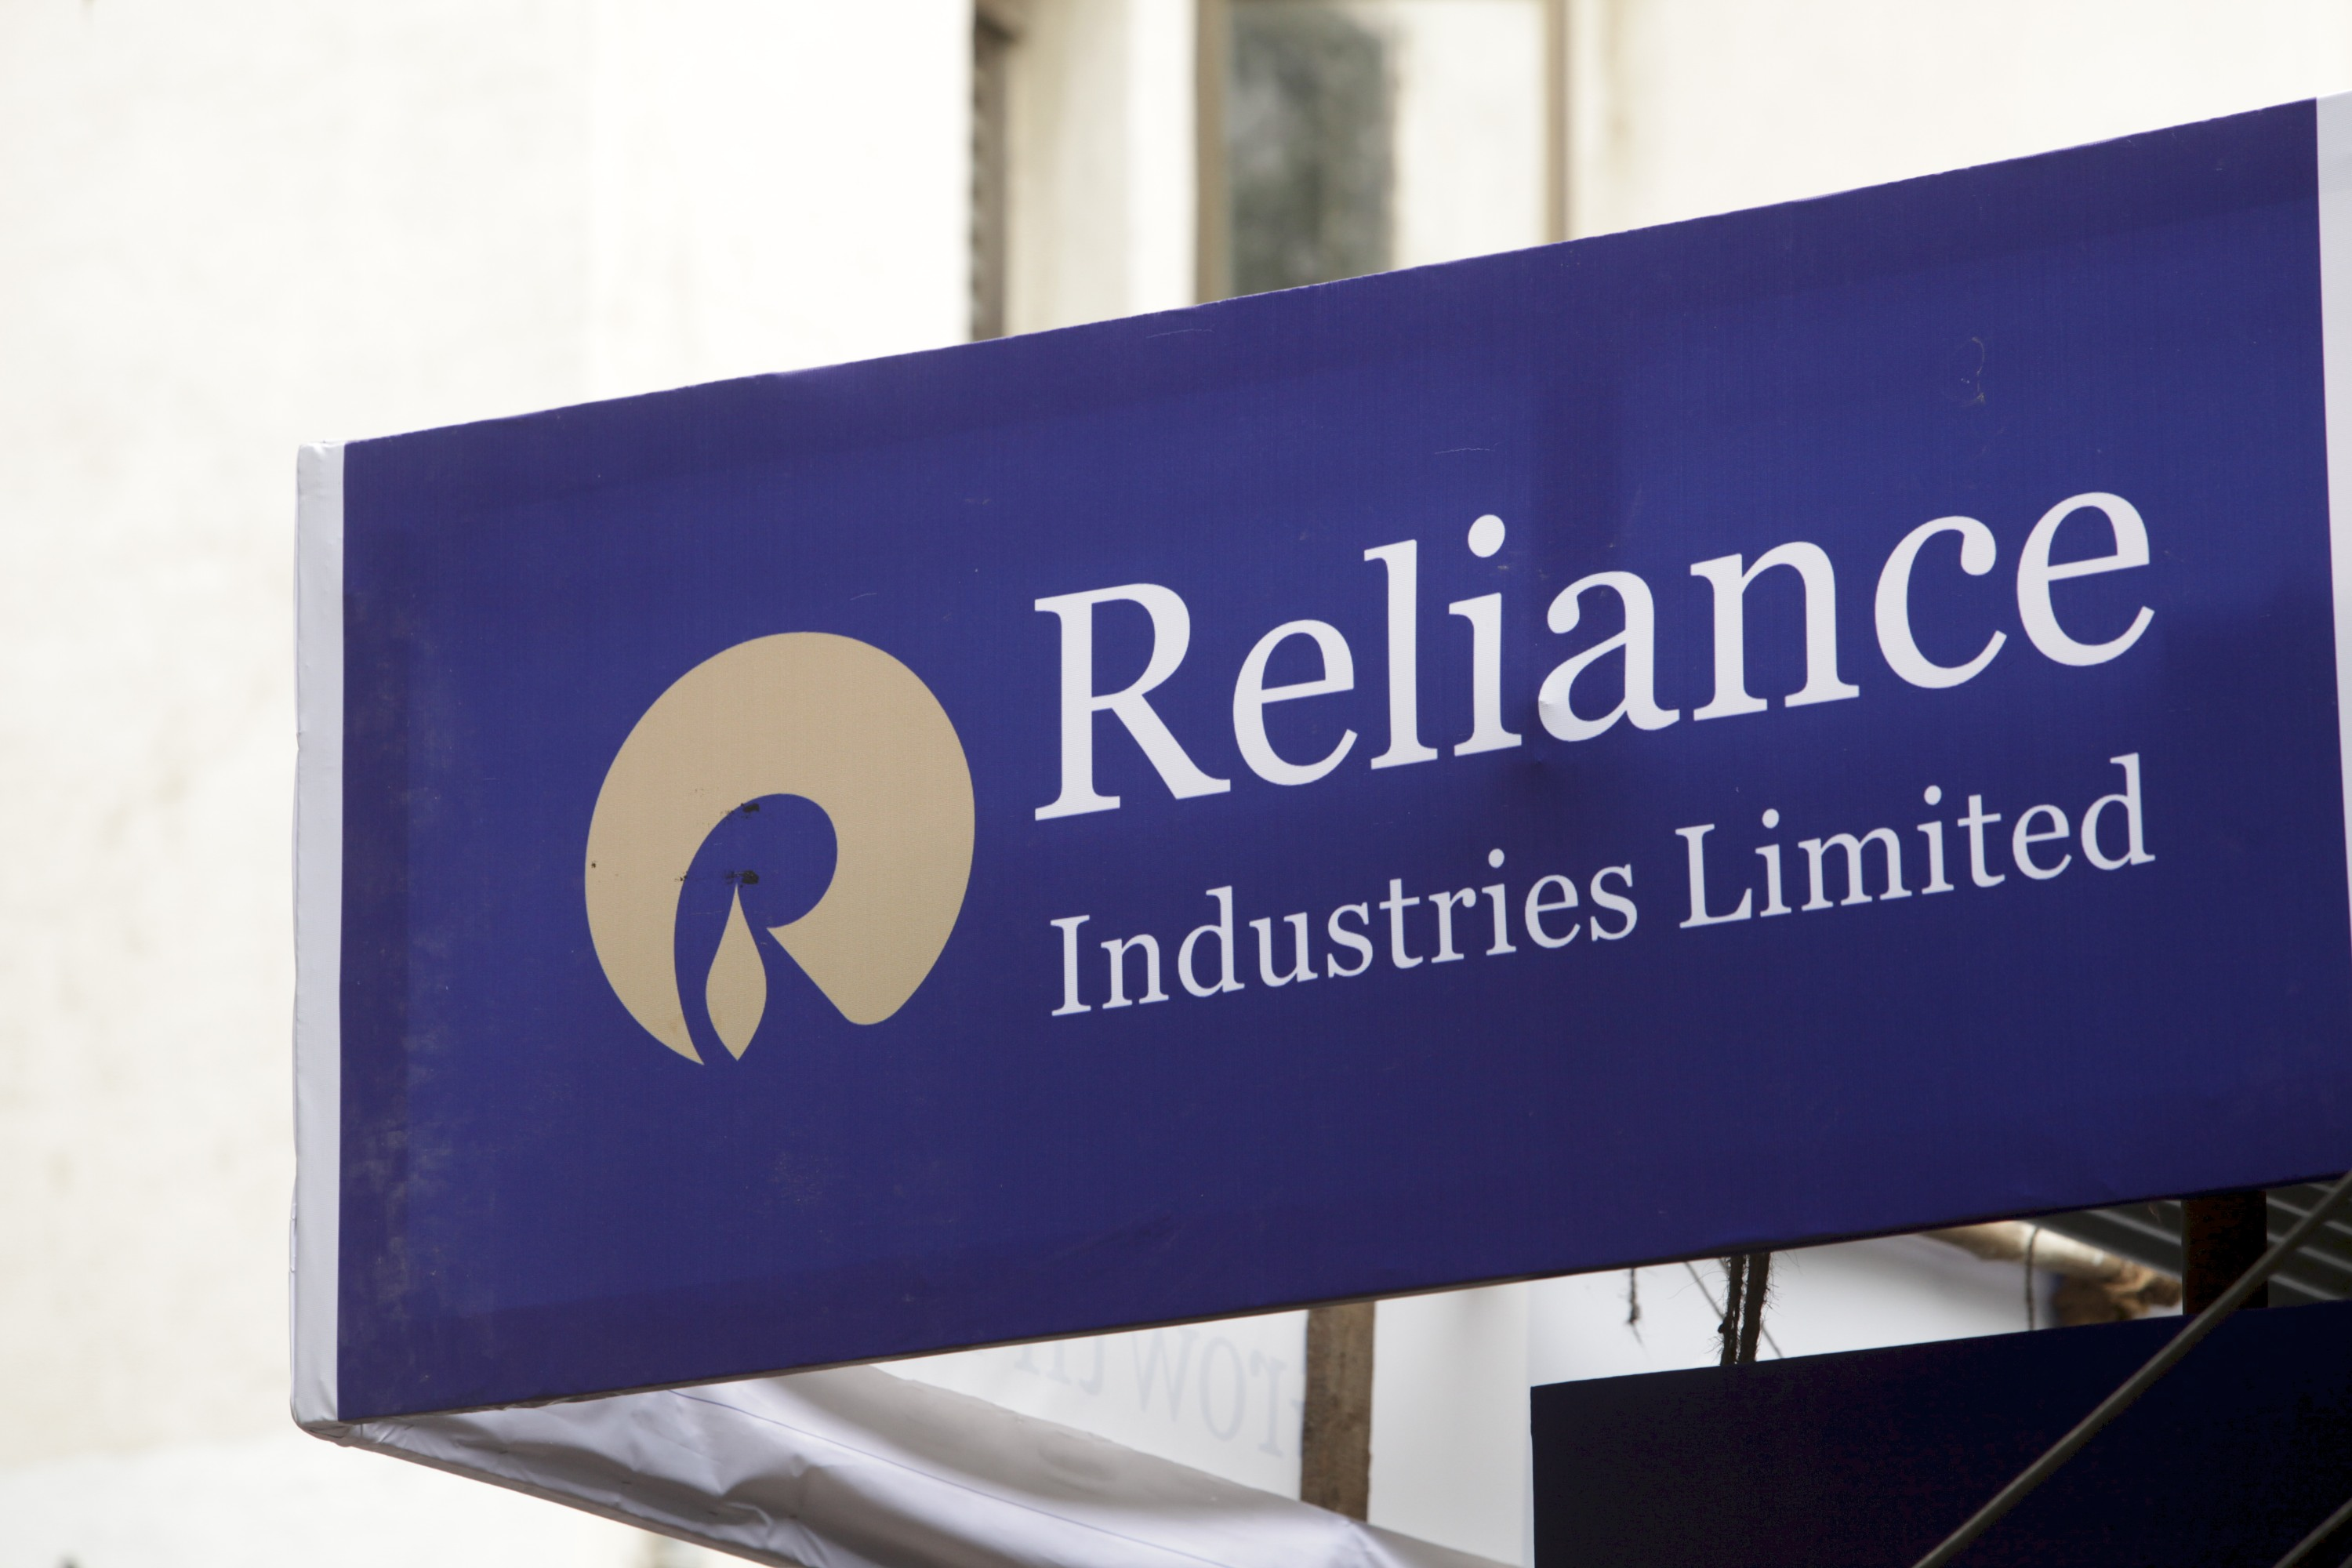 reliance industries ltd Share price, corporate actions, valuation, research report, financials and more - complete track record of reliance industries ltd - snapshot from india's independent mutual fund research house.